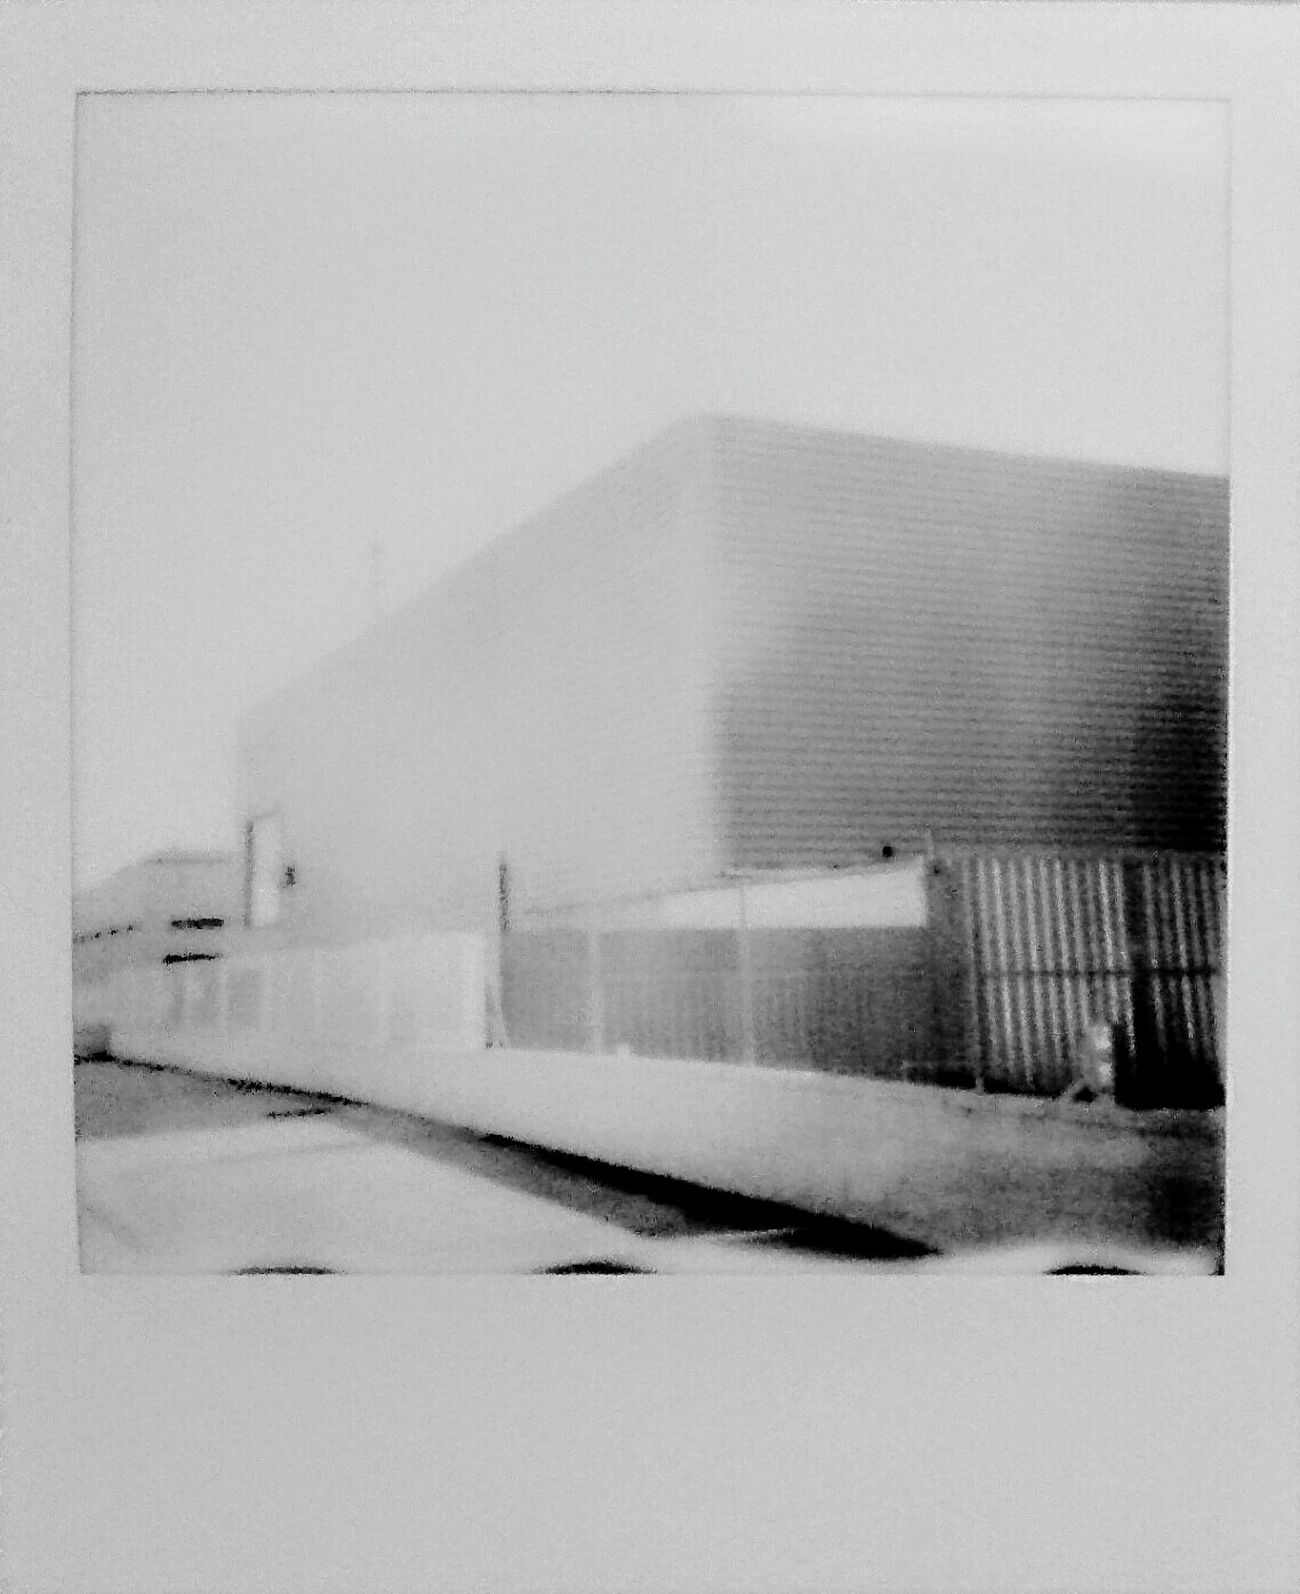 garage instant photo Architecture Built Structure Building Exterior Outdoors Instantphoto Polaroid 600 MyArt Blackandwhite Shapes , Lines , Forms & Composition No People